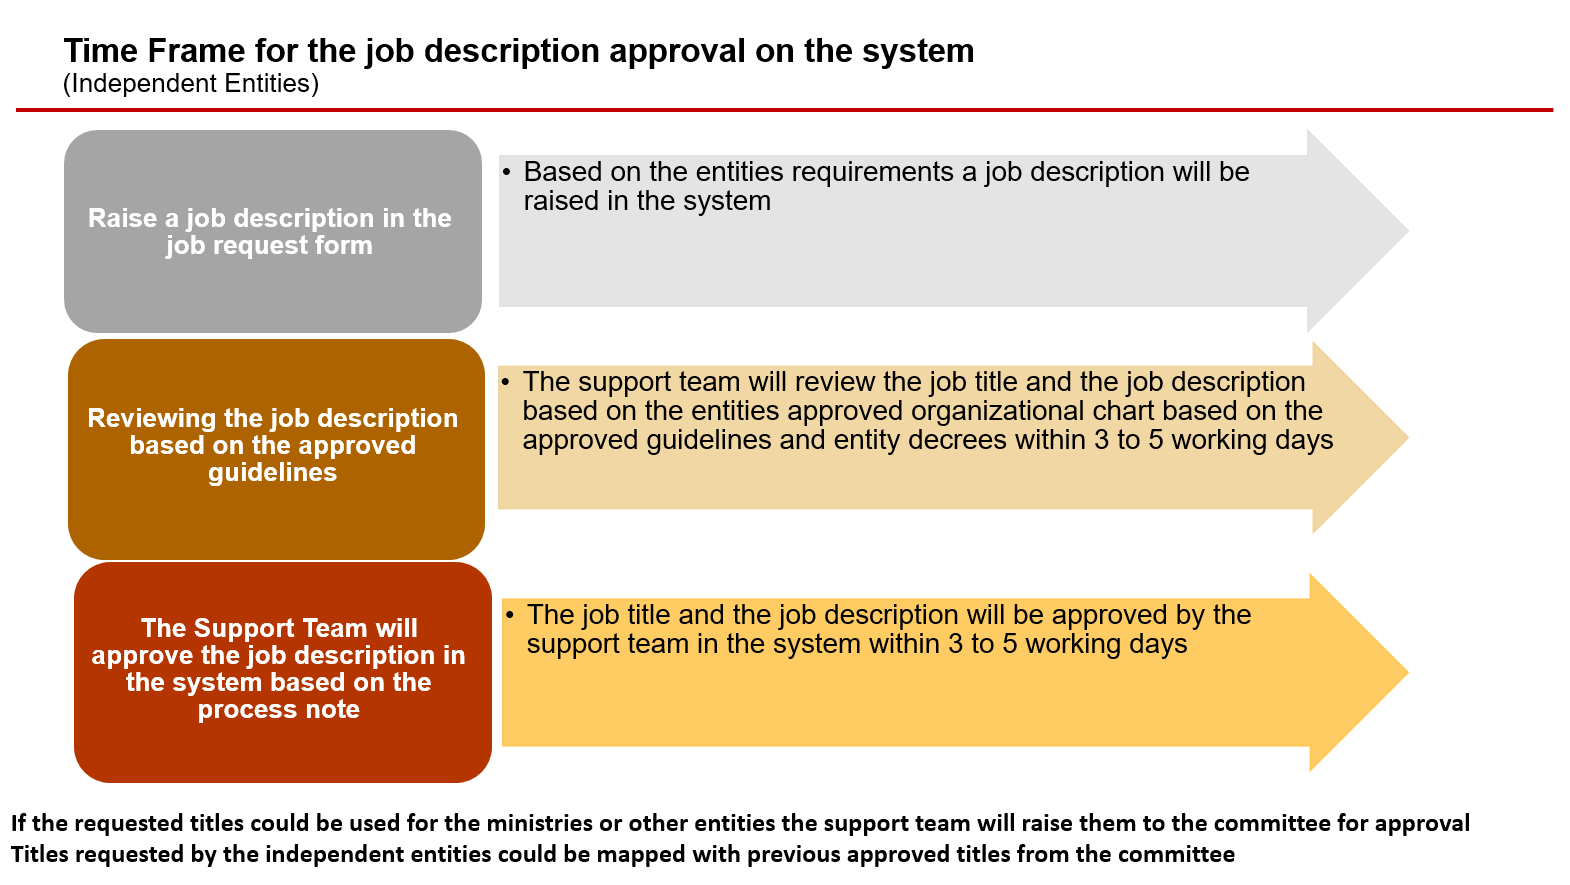 Time Frame for the job description approval on the system(Independent Entities)